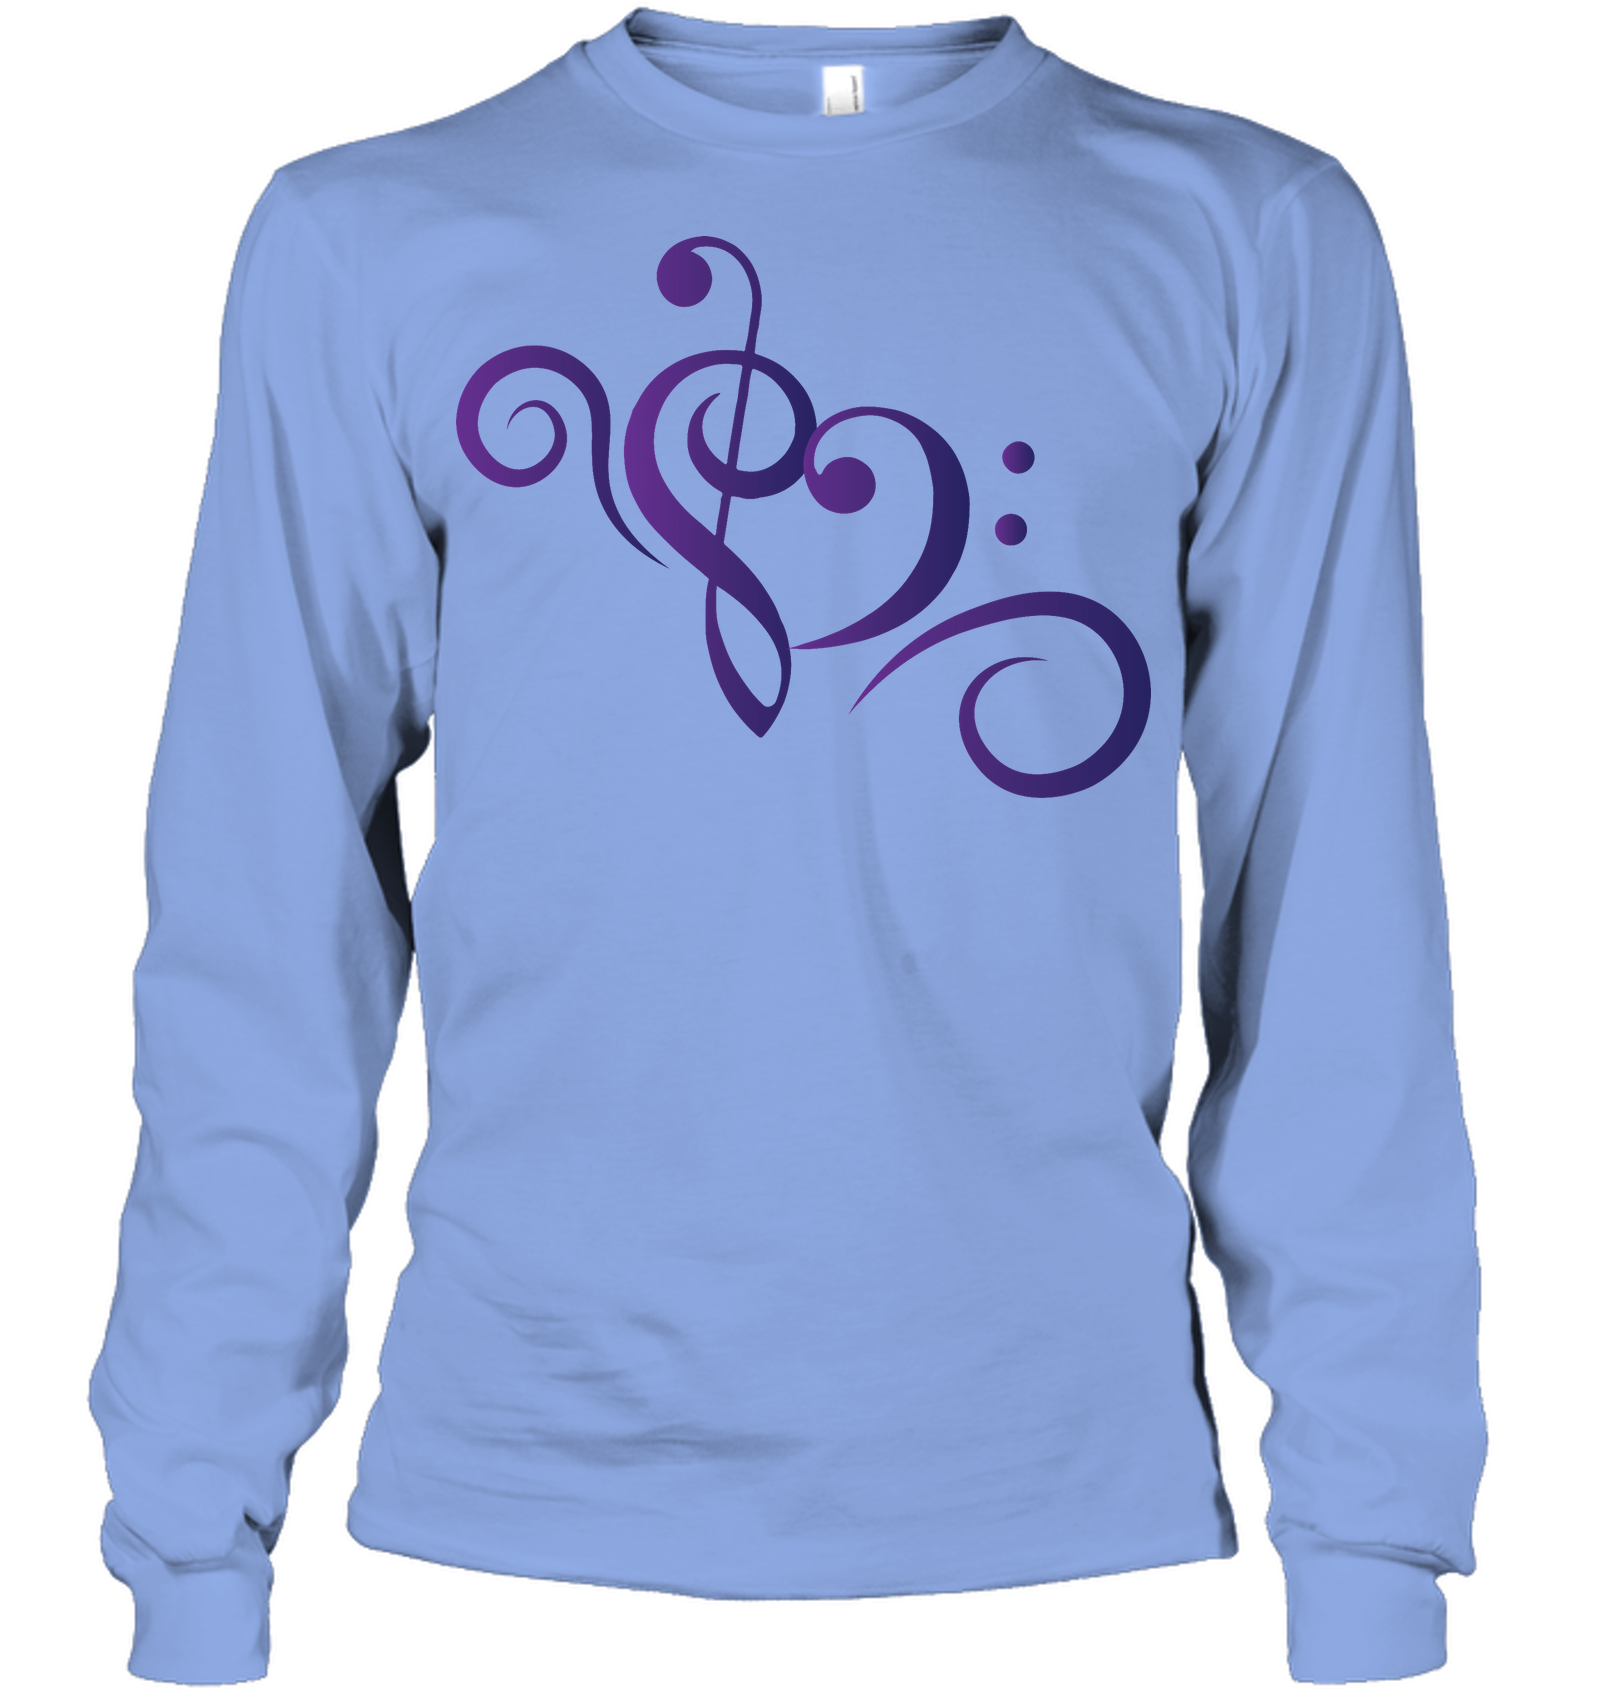 Treble Bass Heart Swirl - Gildan Adult Classic Long Sleeve T-Shirt